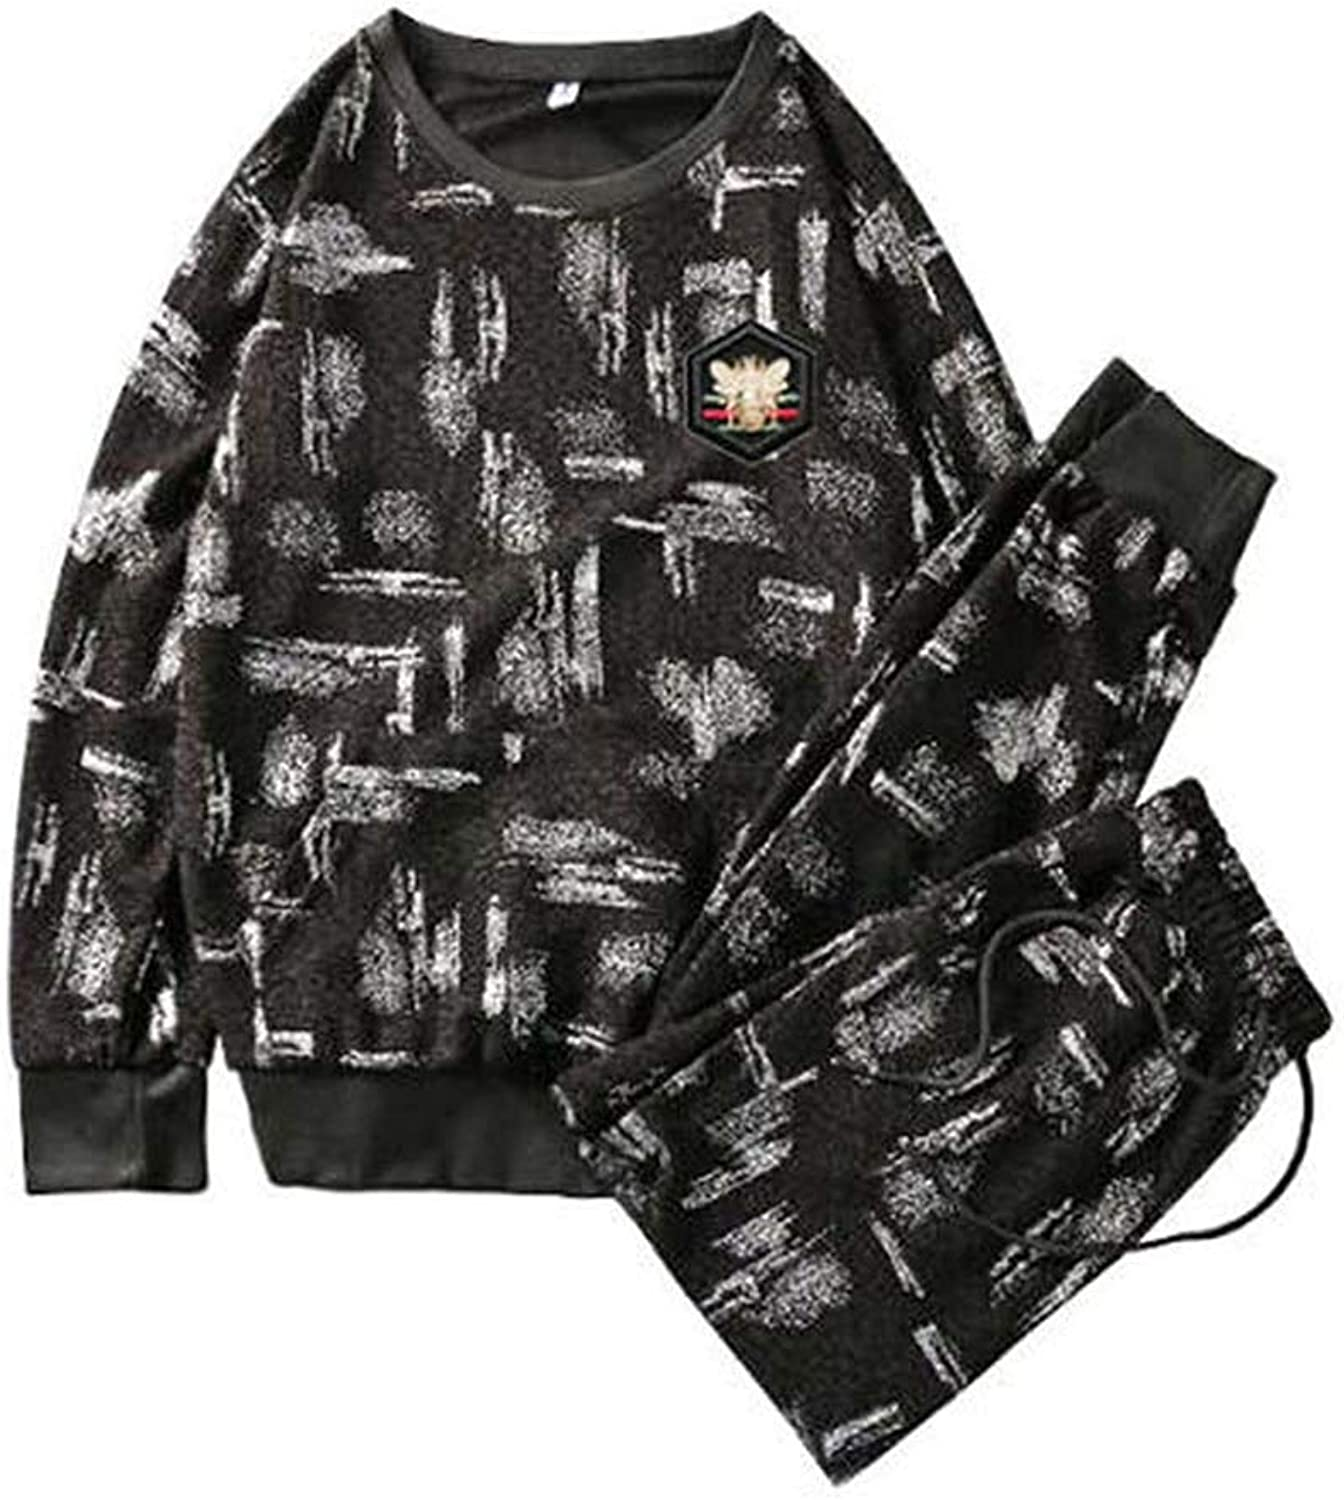 Cdon Sports Suits Print Slim Fit Young Track Suit Outwear Jogging